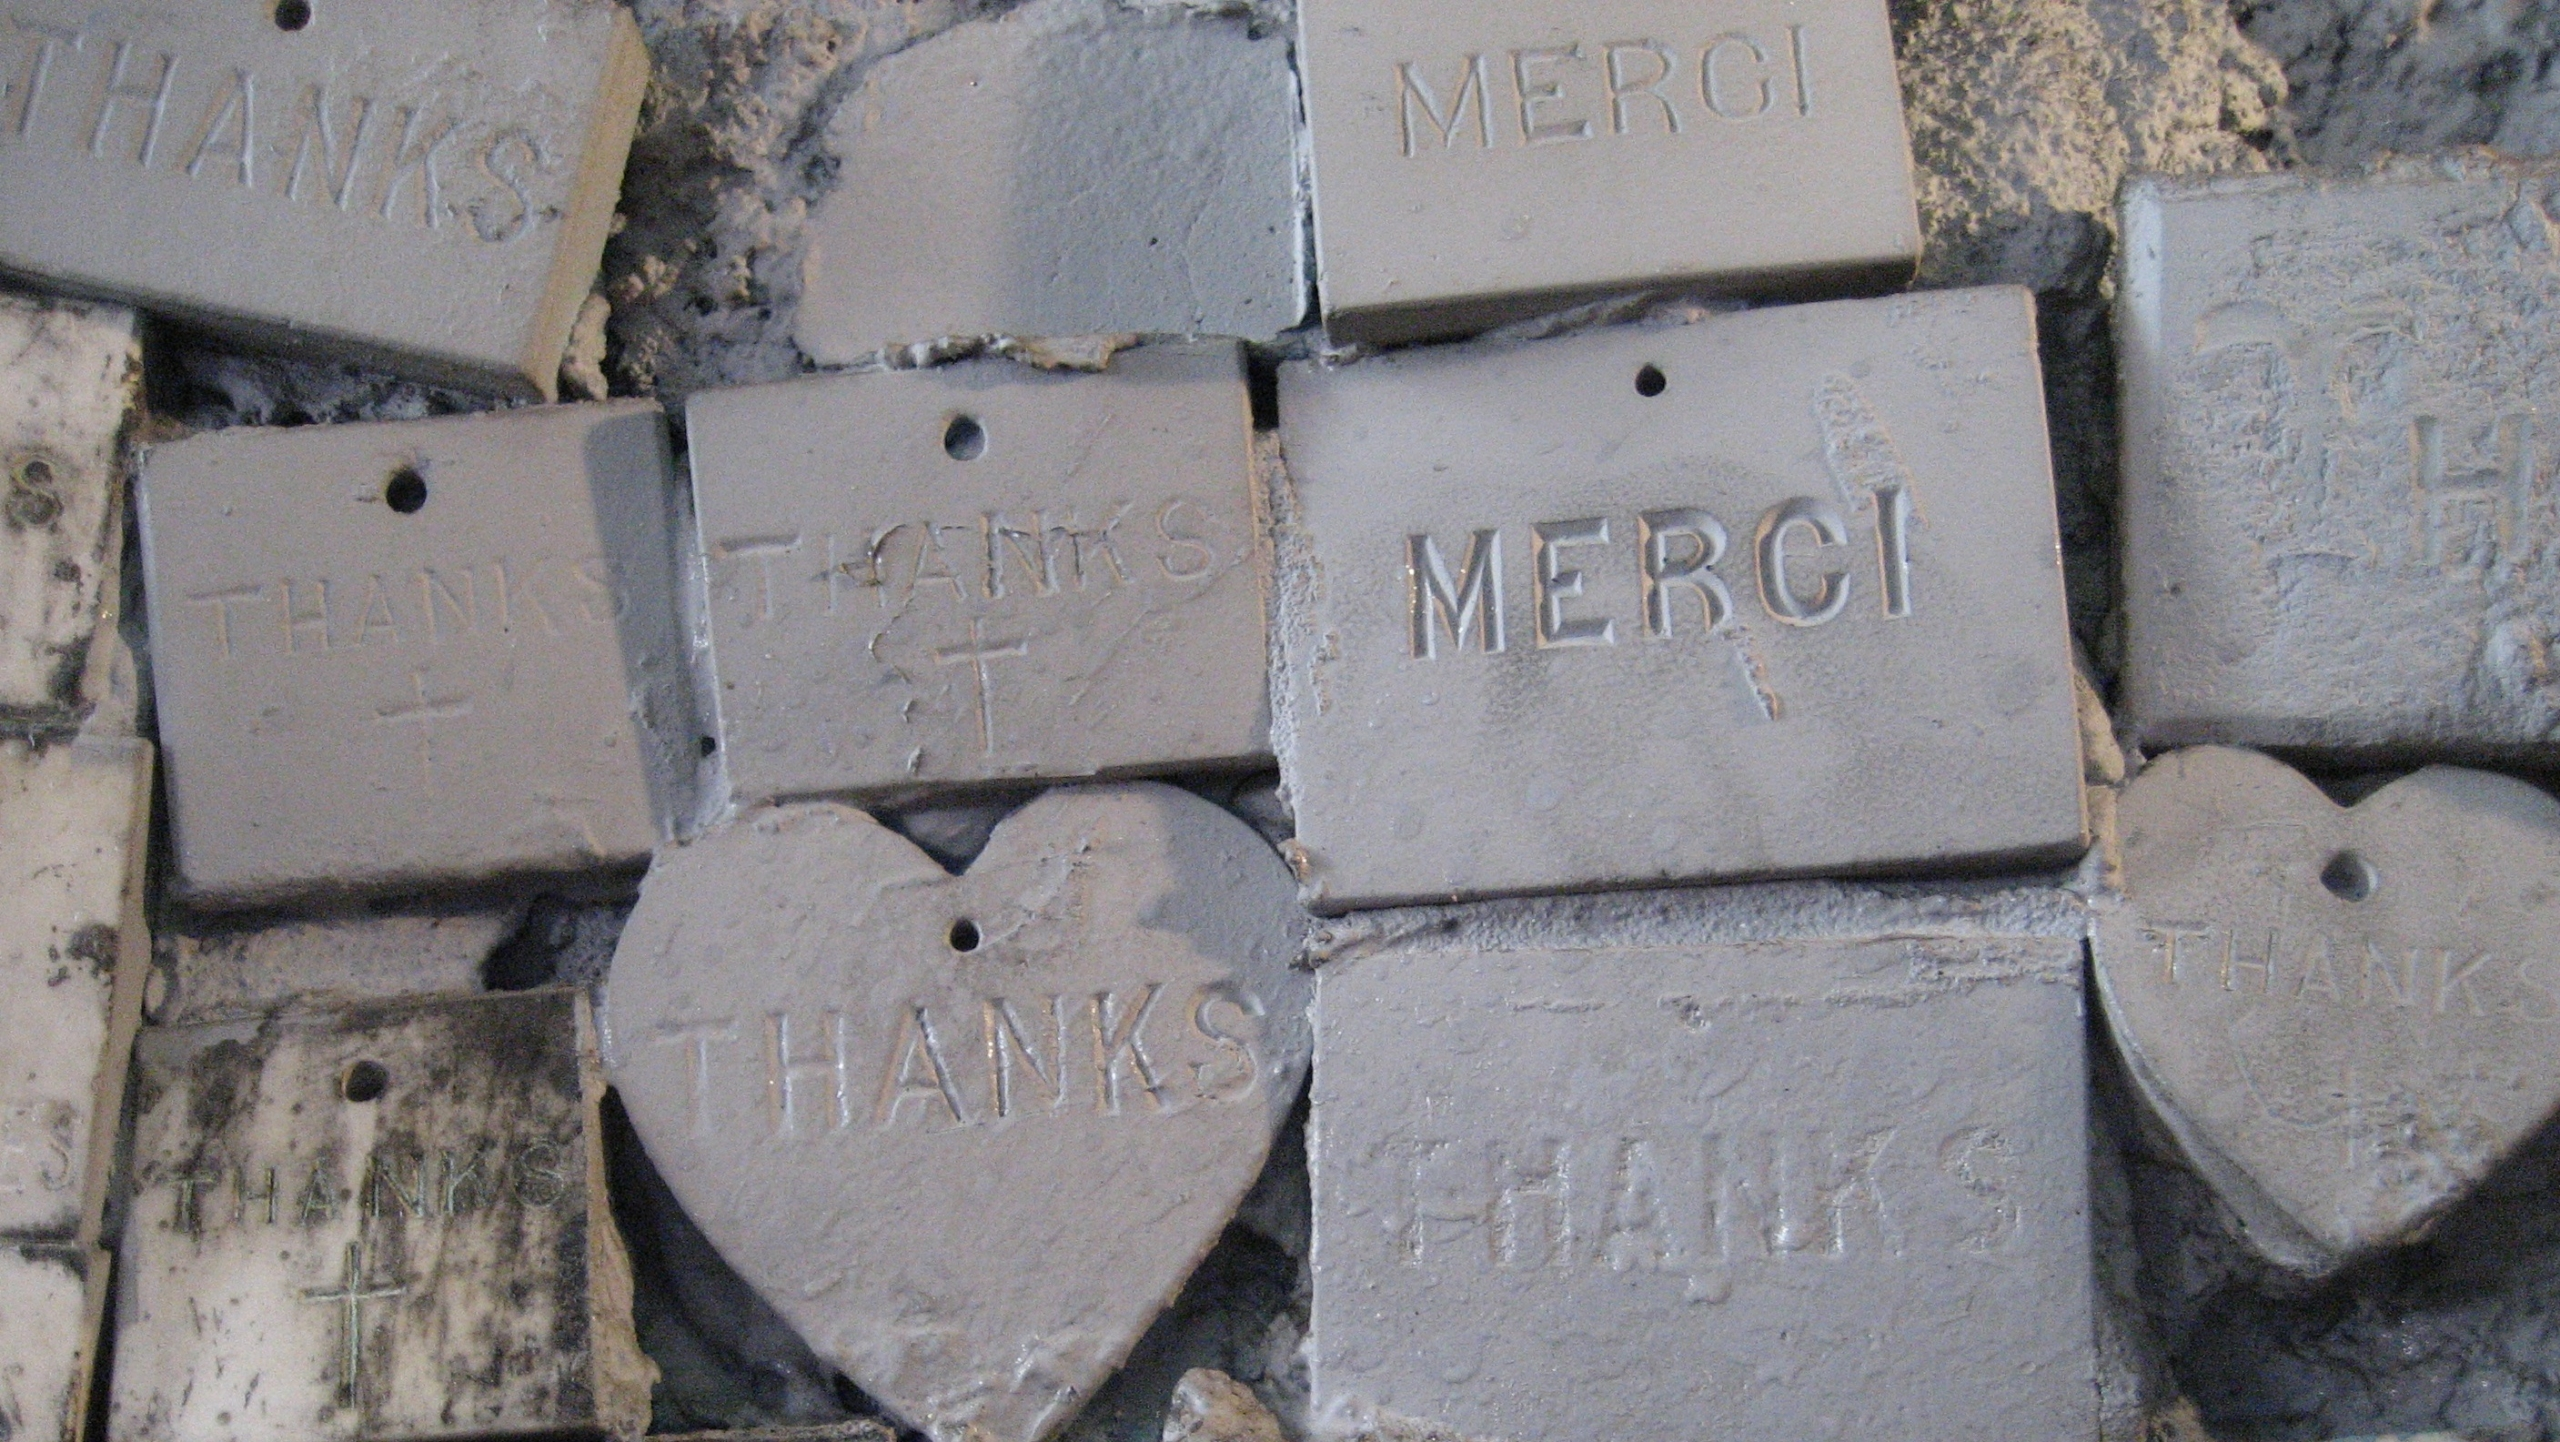 Small items saying thanks and merci